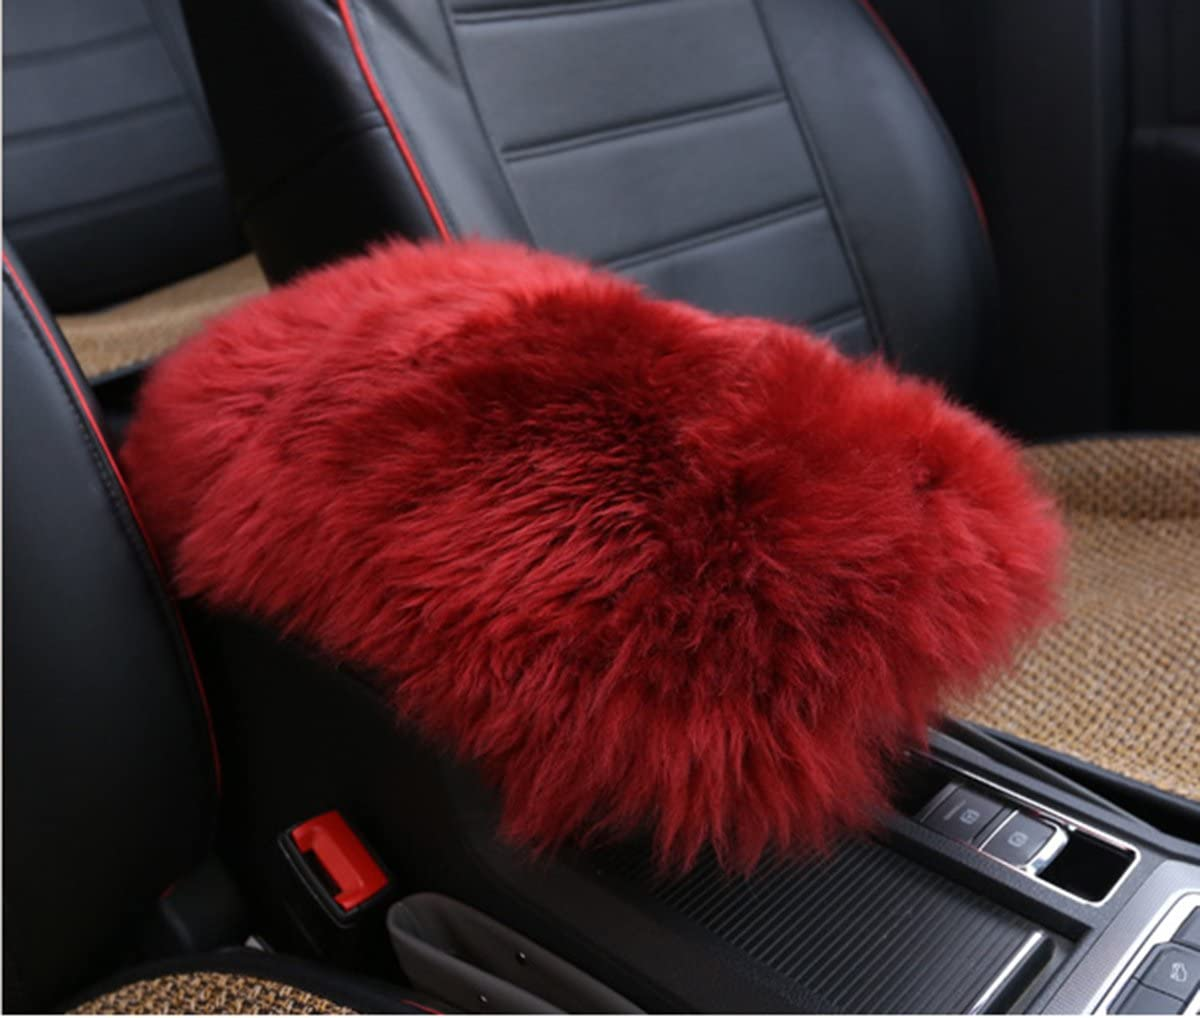 MLOVESIE Auto Center Console Armrest Pad Black Warm Winter Fluffy Sheepskin Wool Vehicle Center Console Arm Rest Seat Box Pad Cover Cushion Universal Fit for Most Car 5.91x11.81 inch